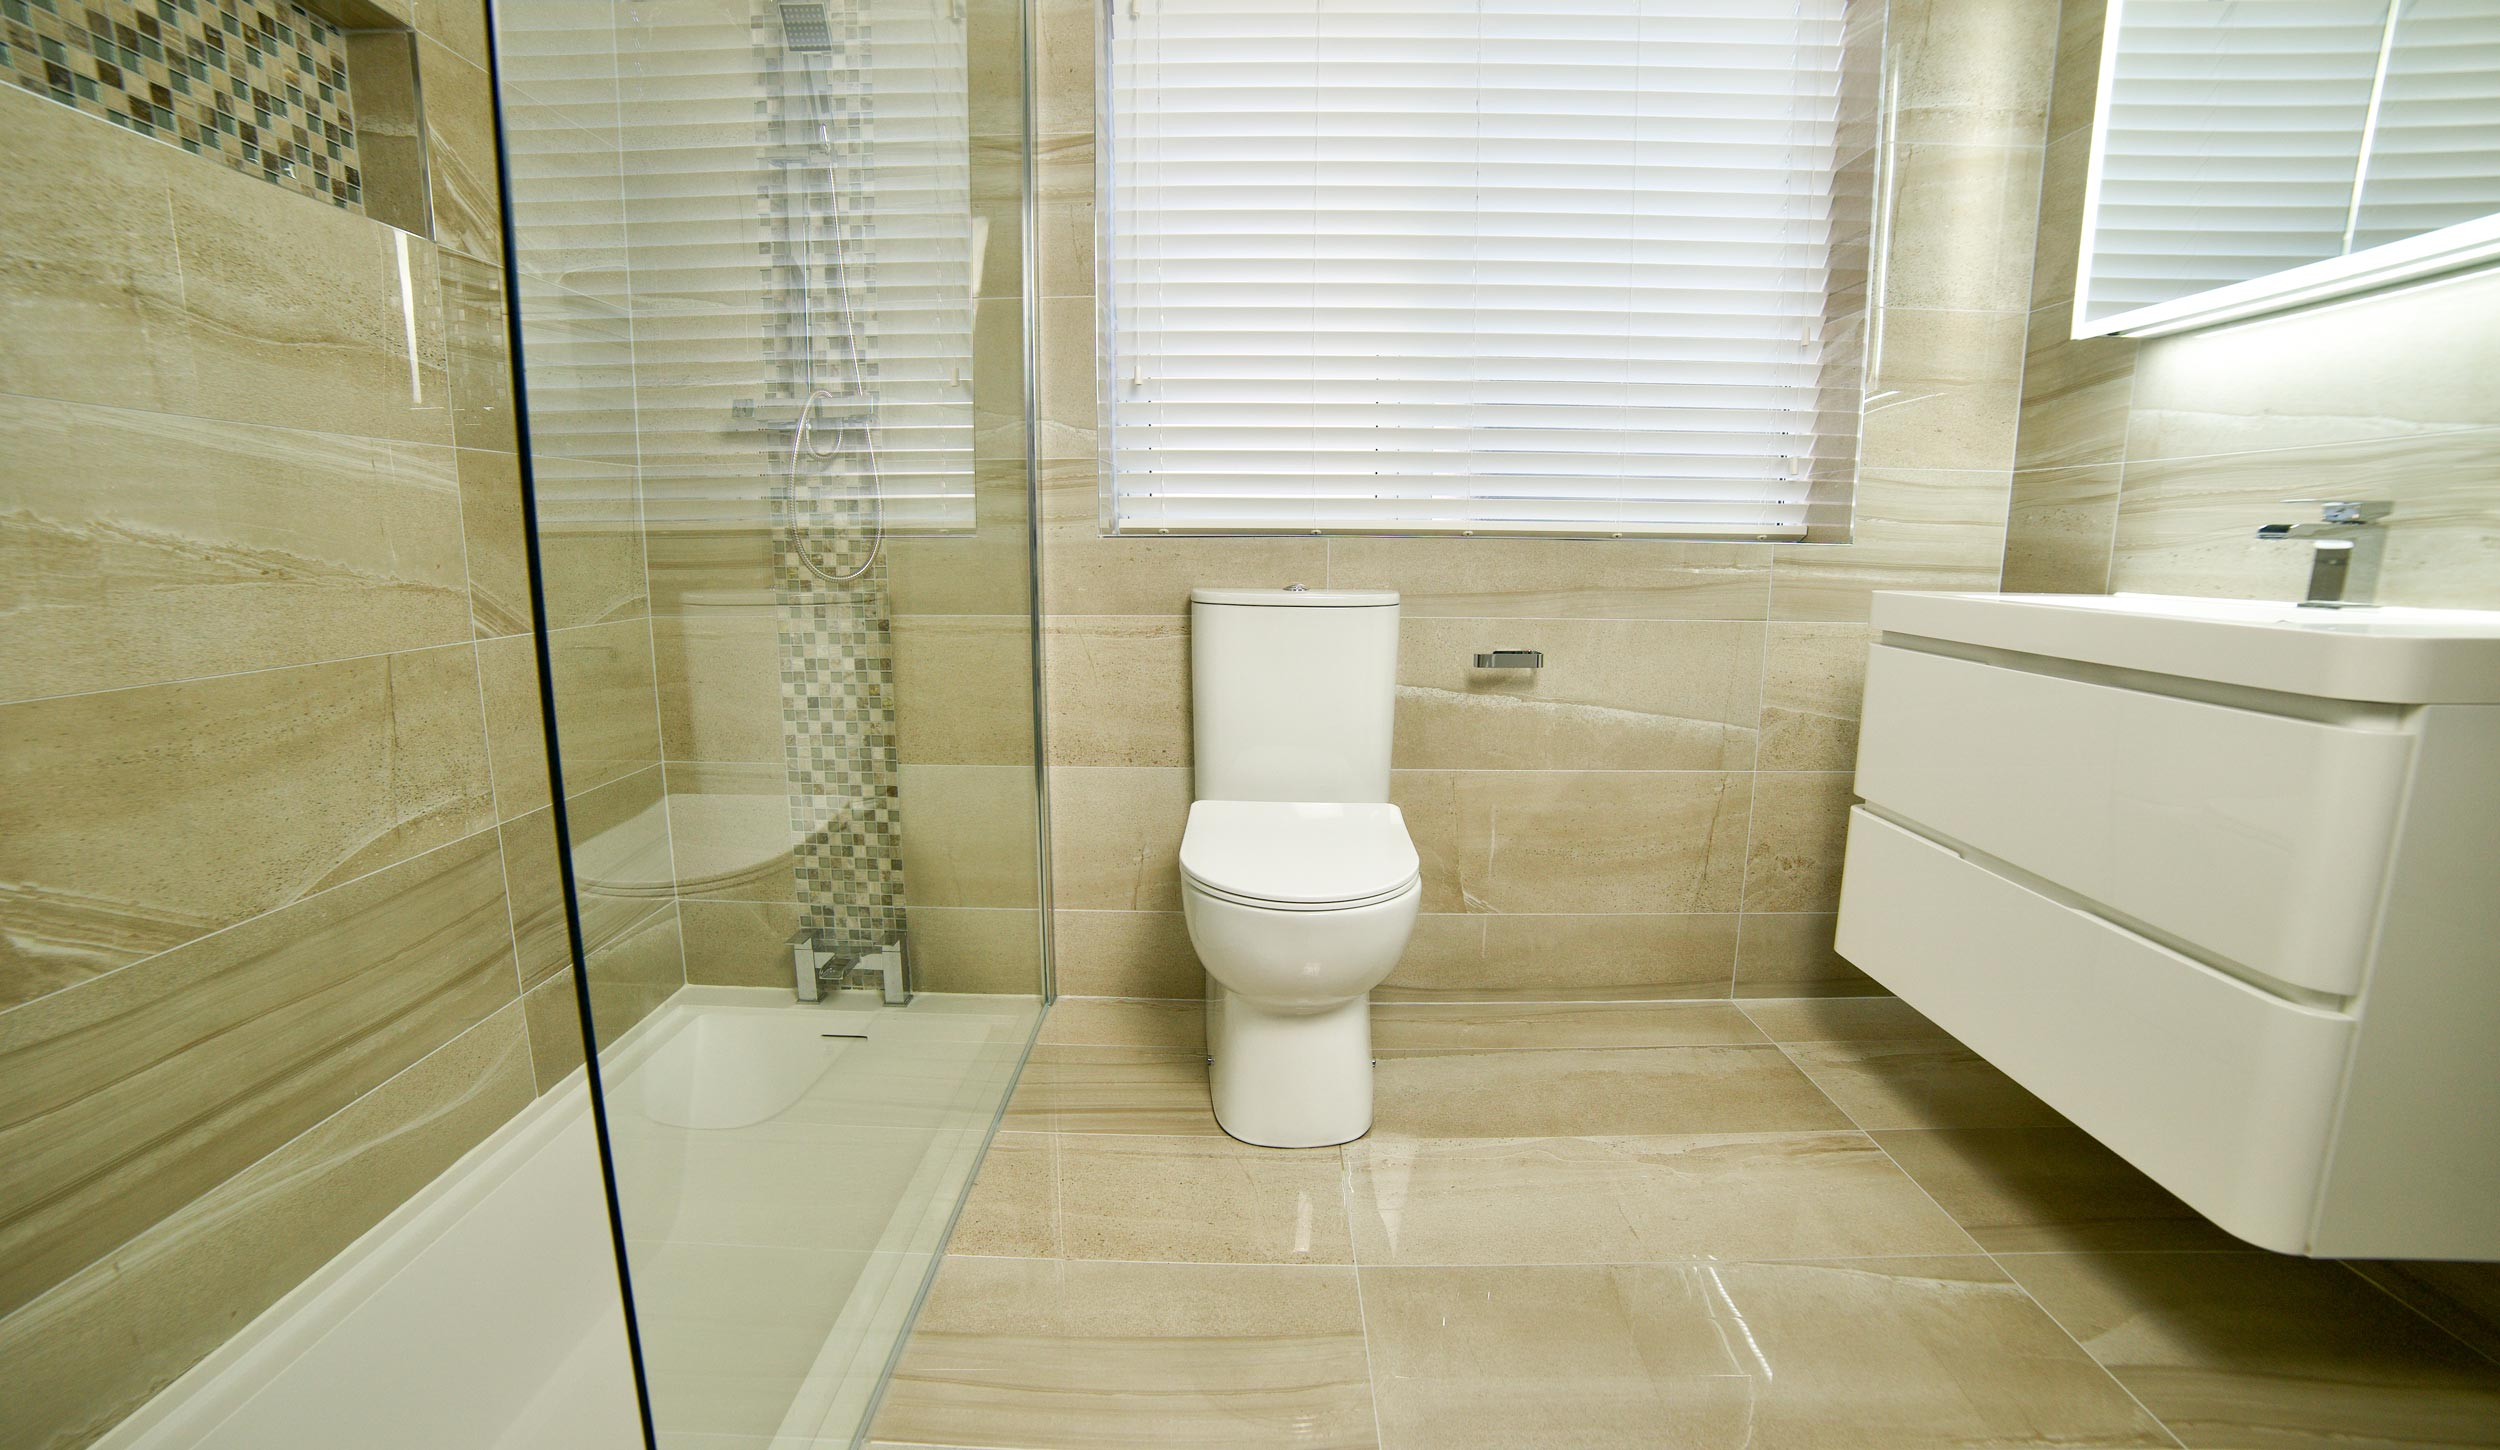 Affordable luxury bathrooms, kitchens & tiles